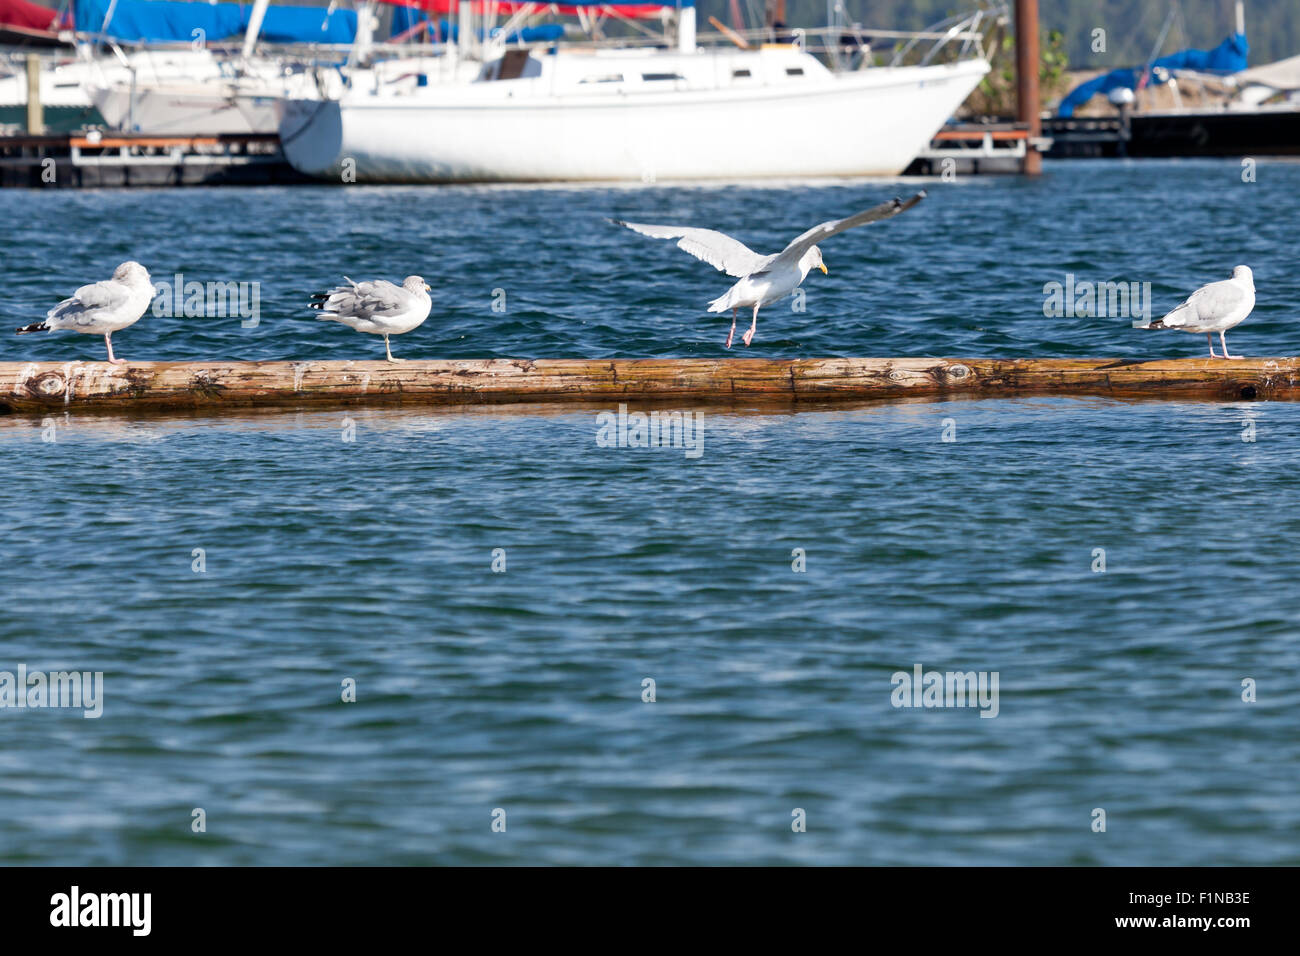 Four Seagulls in various stages of activity on a log floating in a marina in Northern Idaho. - Stock Image